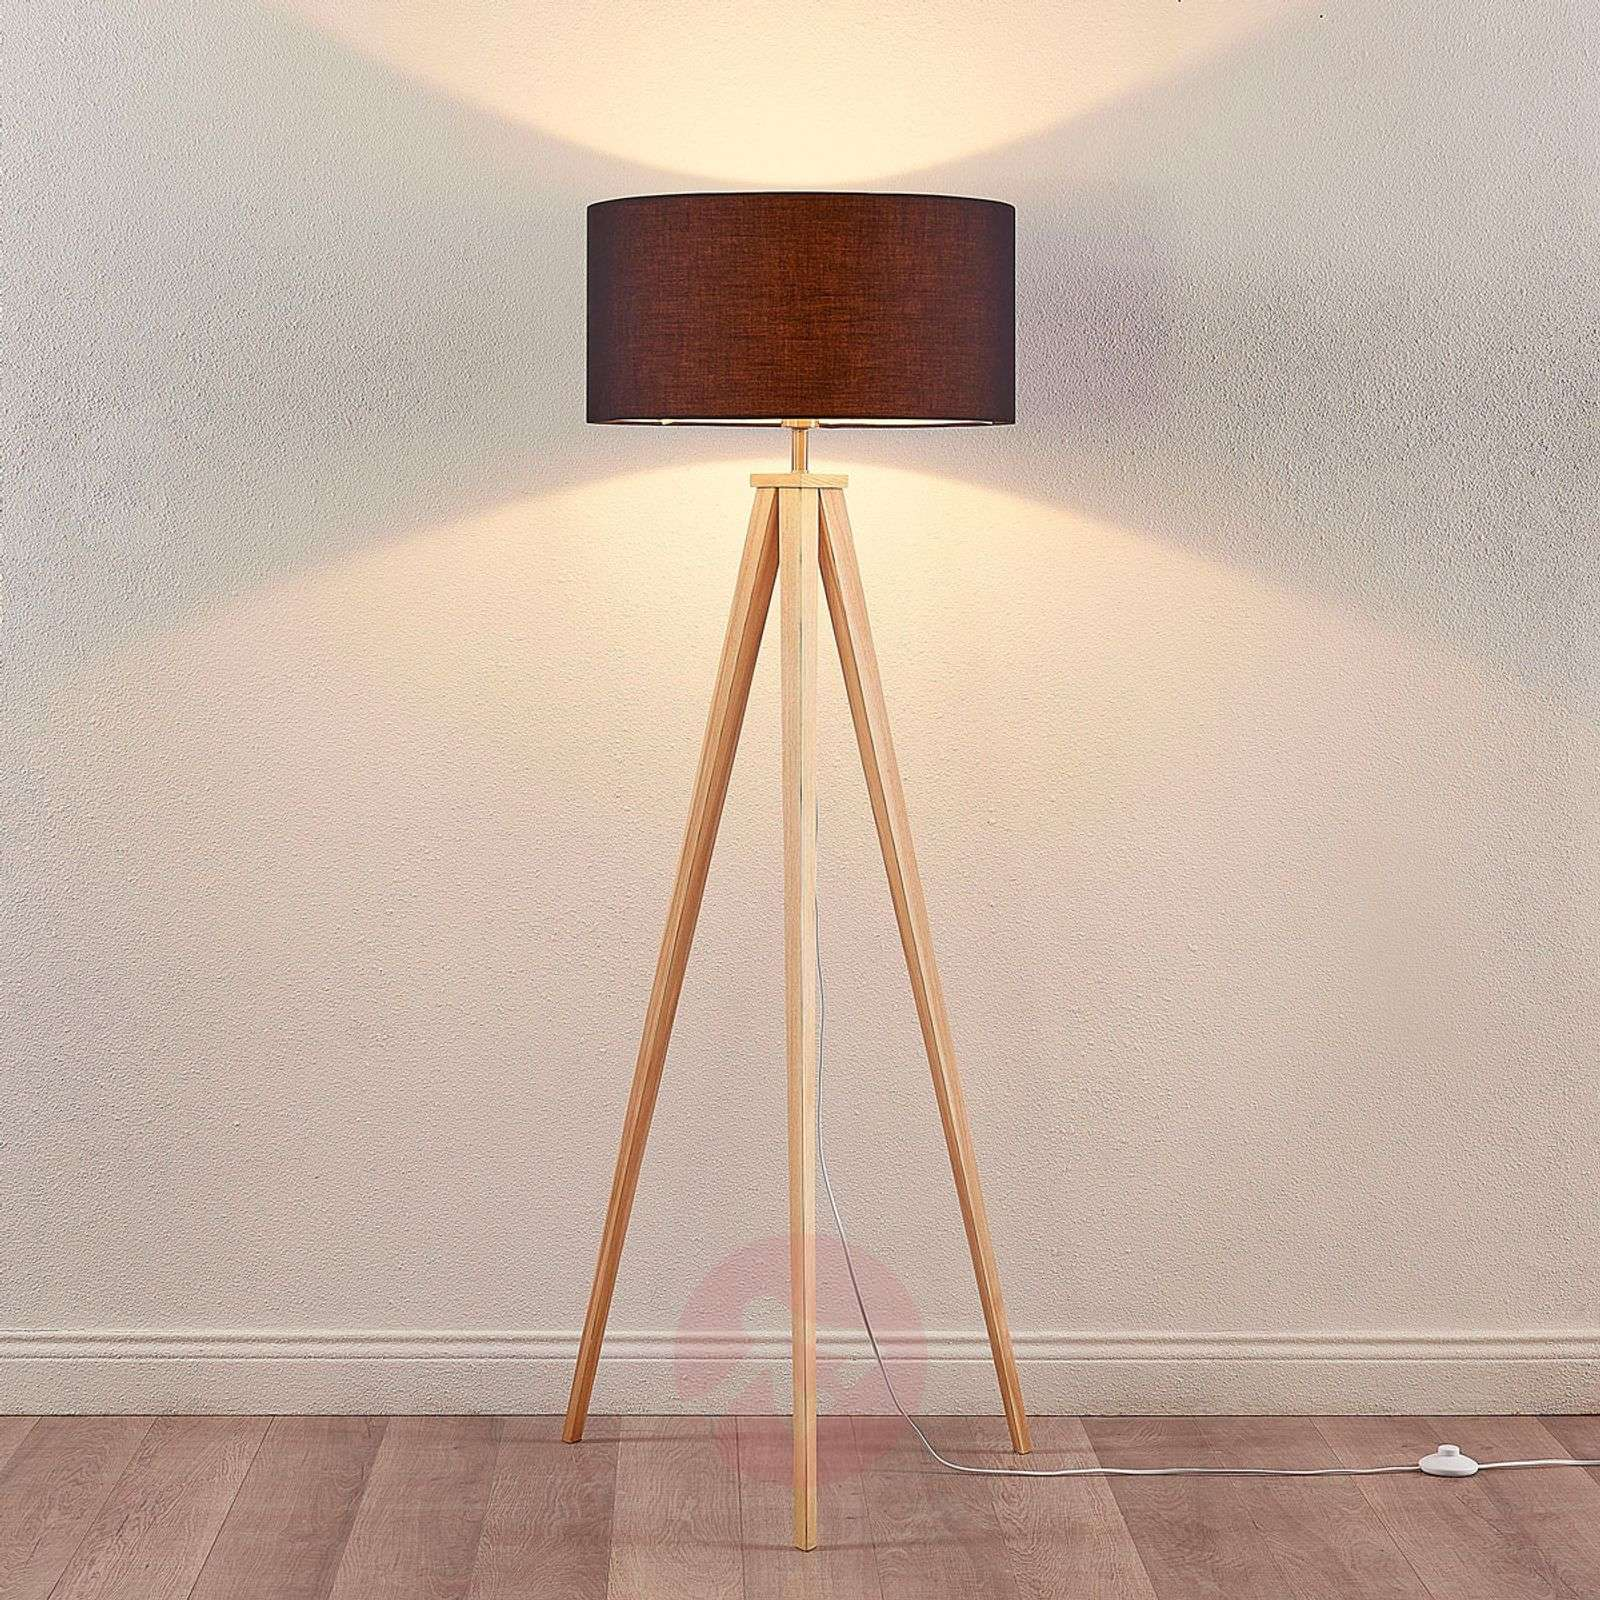 Mya wooden floor lamp with black fabric lampshade lights mya wooden floor lamp with black fabric lampshade 9621330 01 mozeypictures Image collections